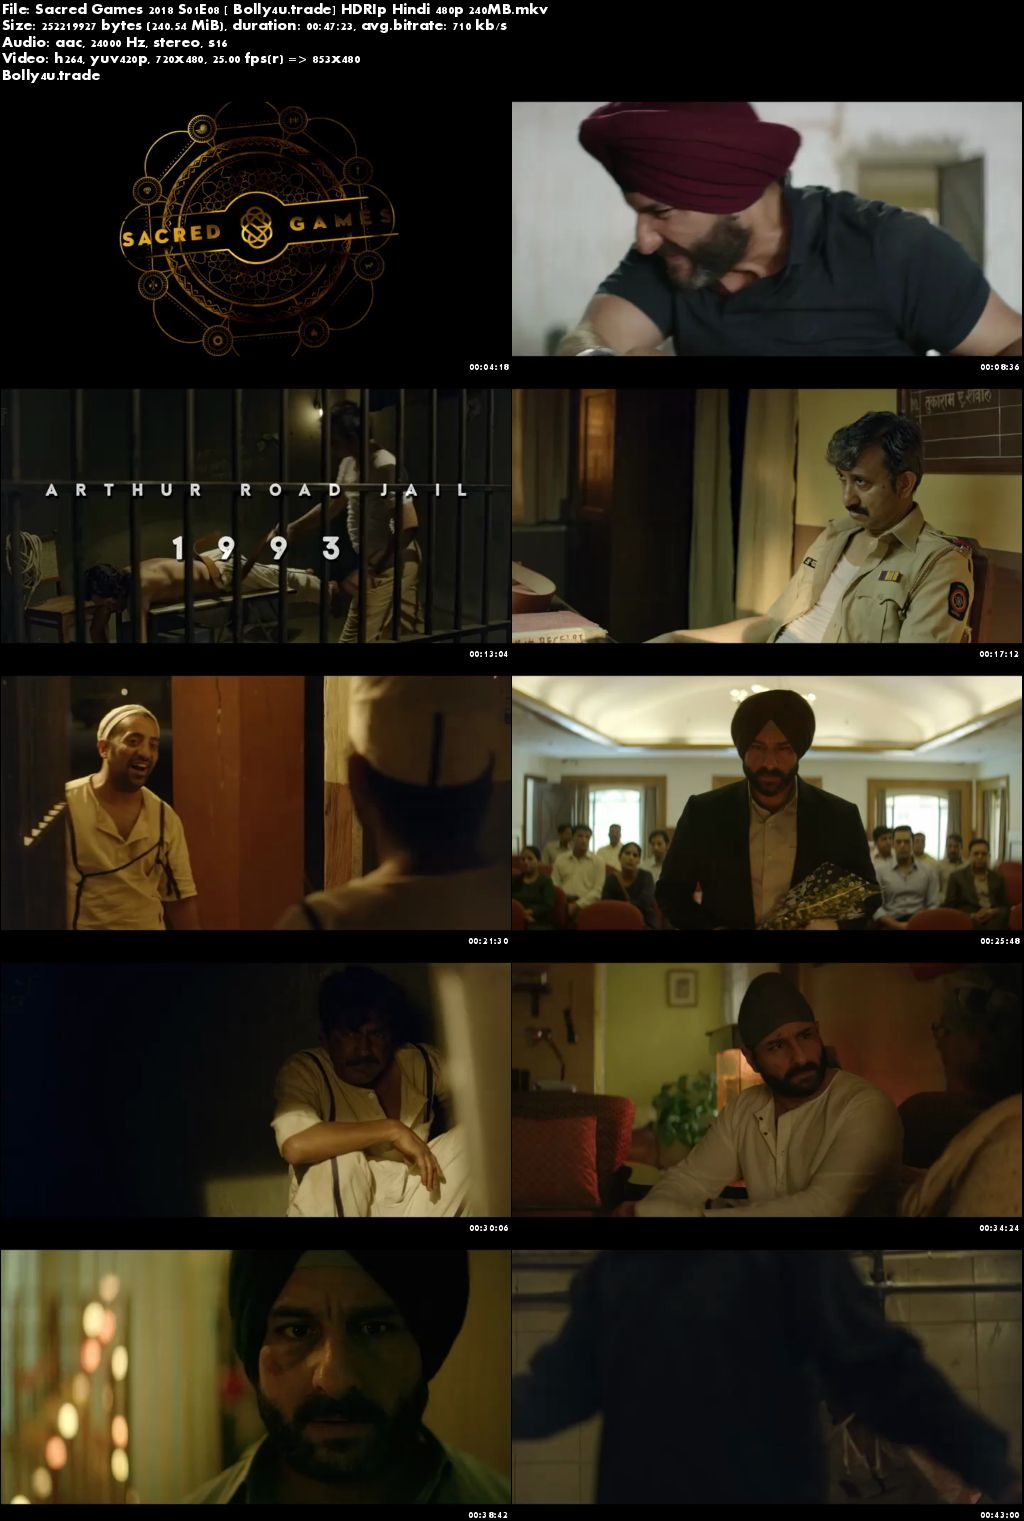 Sacred Games 2018 S01E08 HDRip 250MB Hindi 480p Download